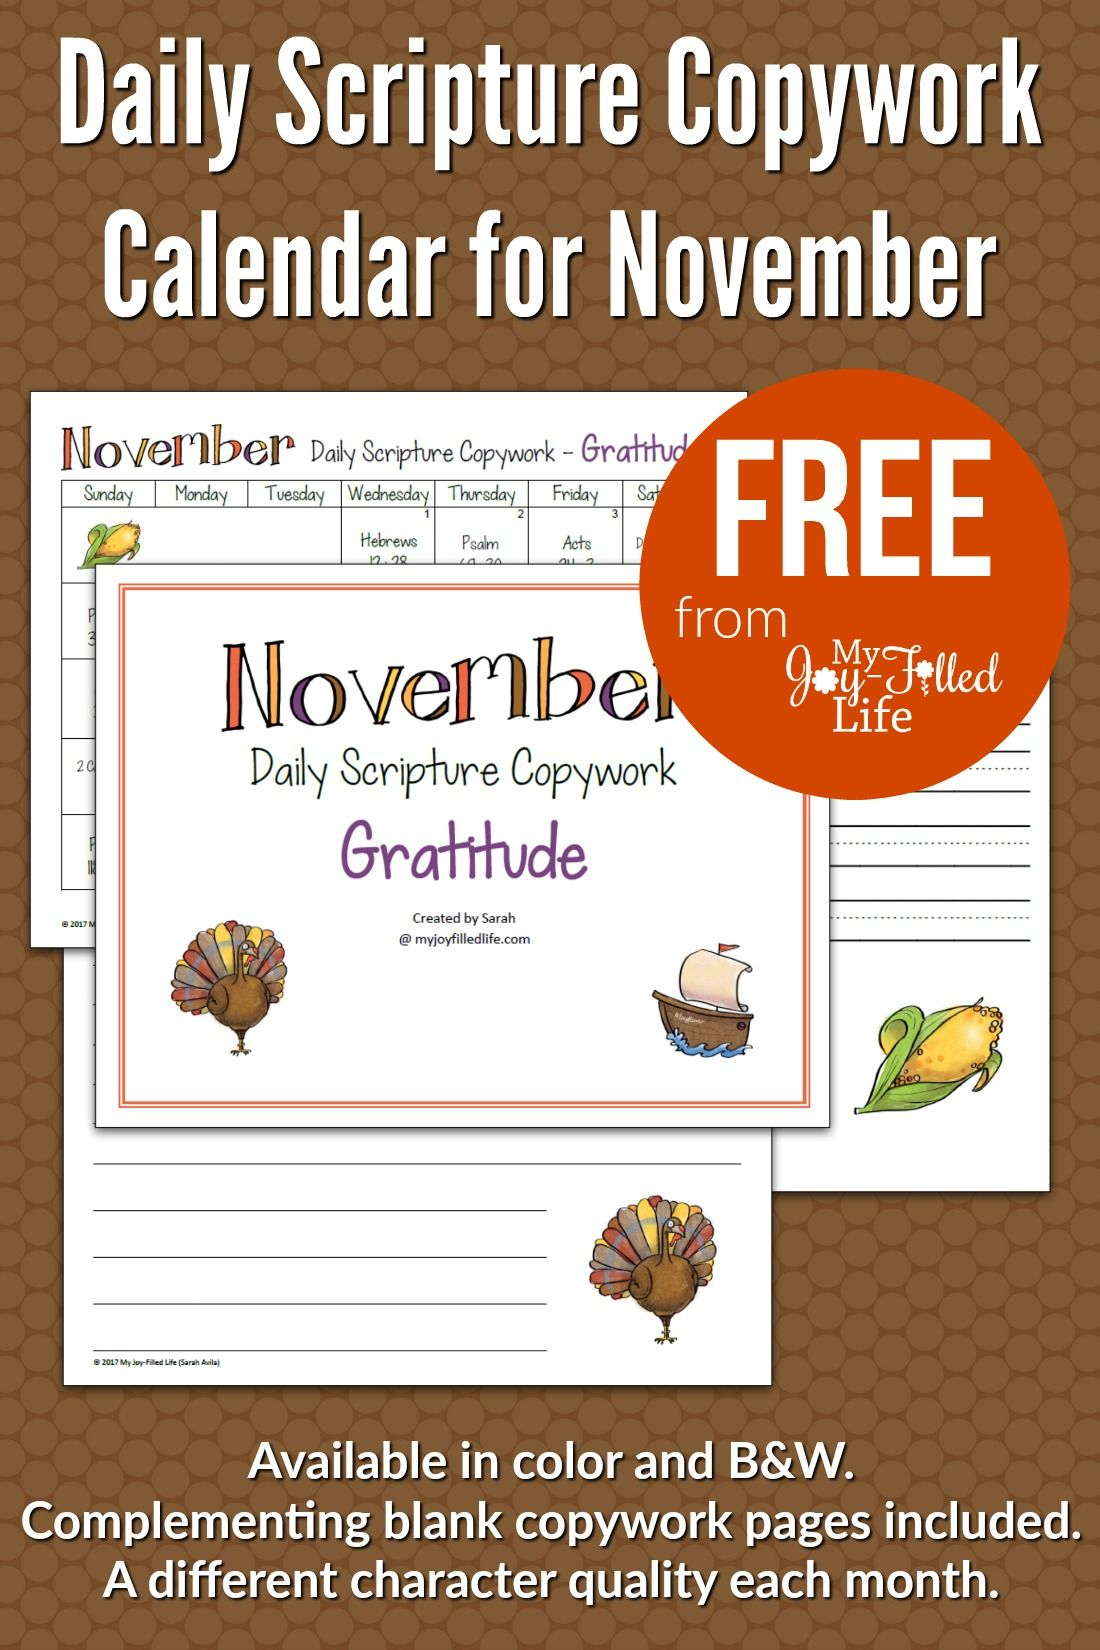 Daily Scripture Copywork Calendar For November